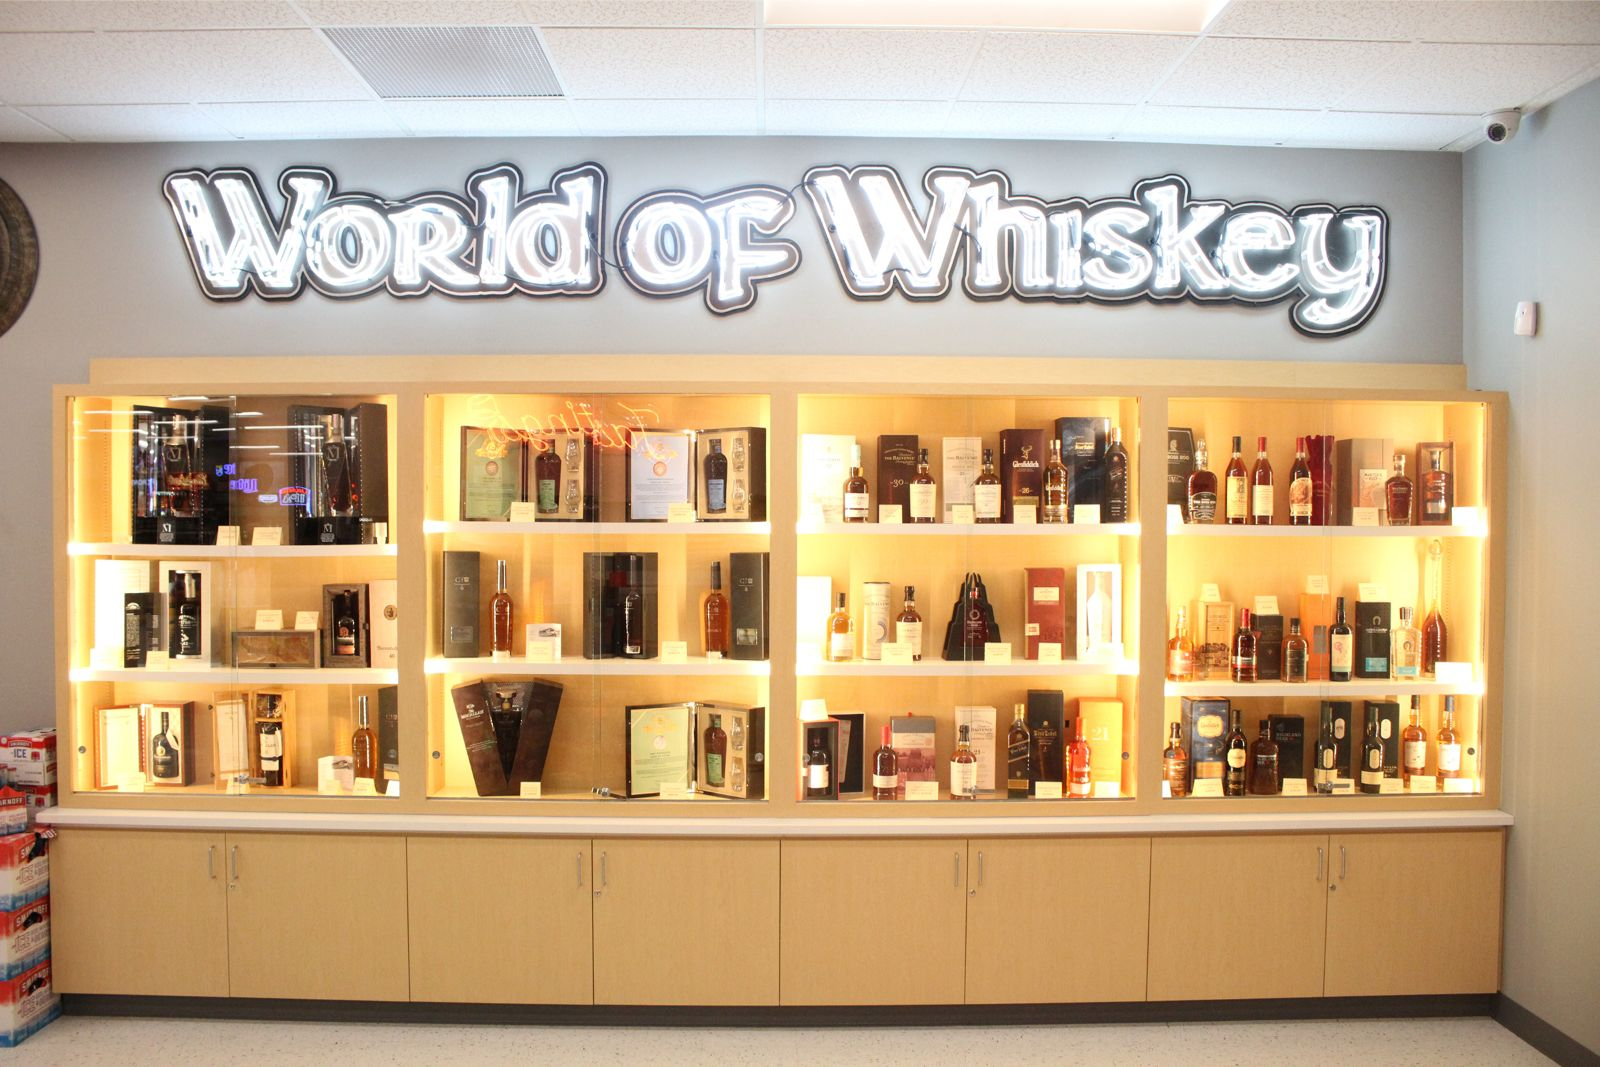 R & J Discount Liquor World of Whiskey